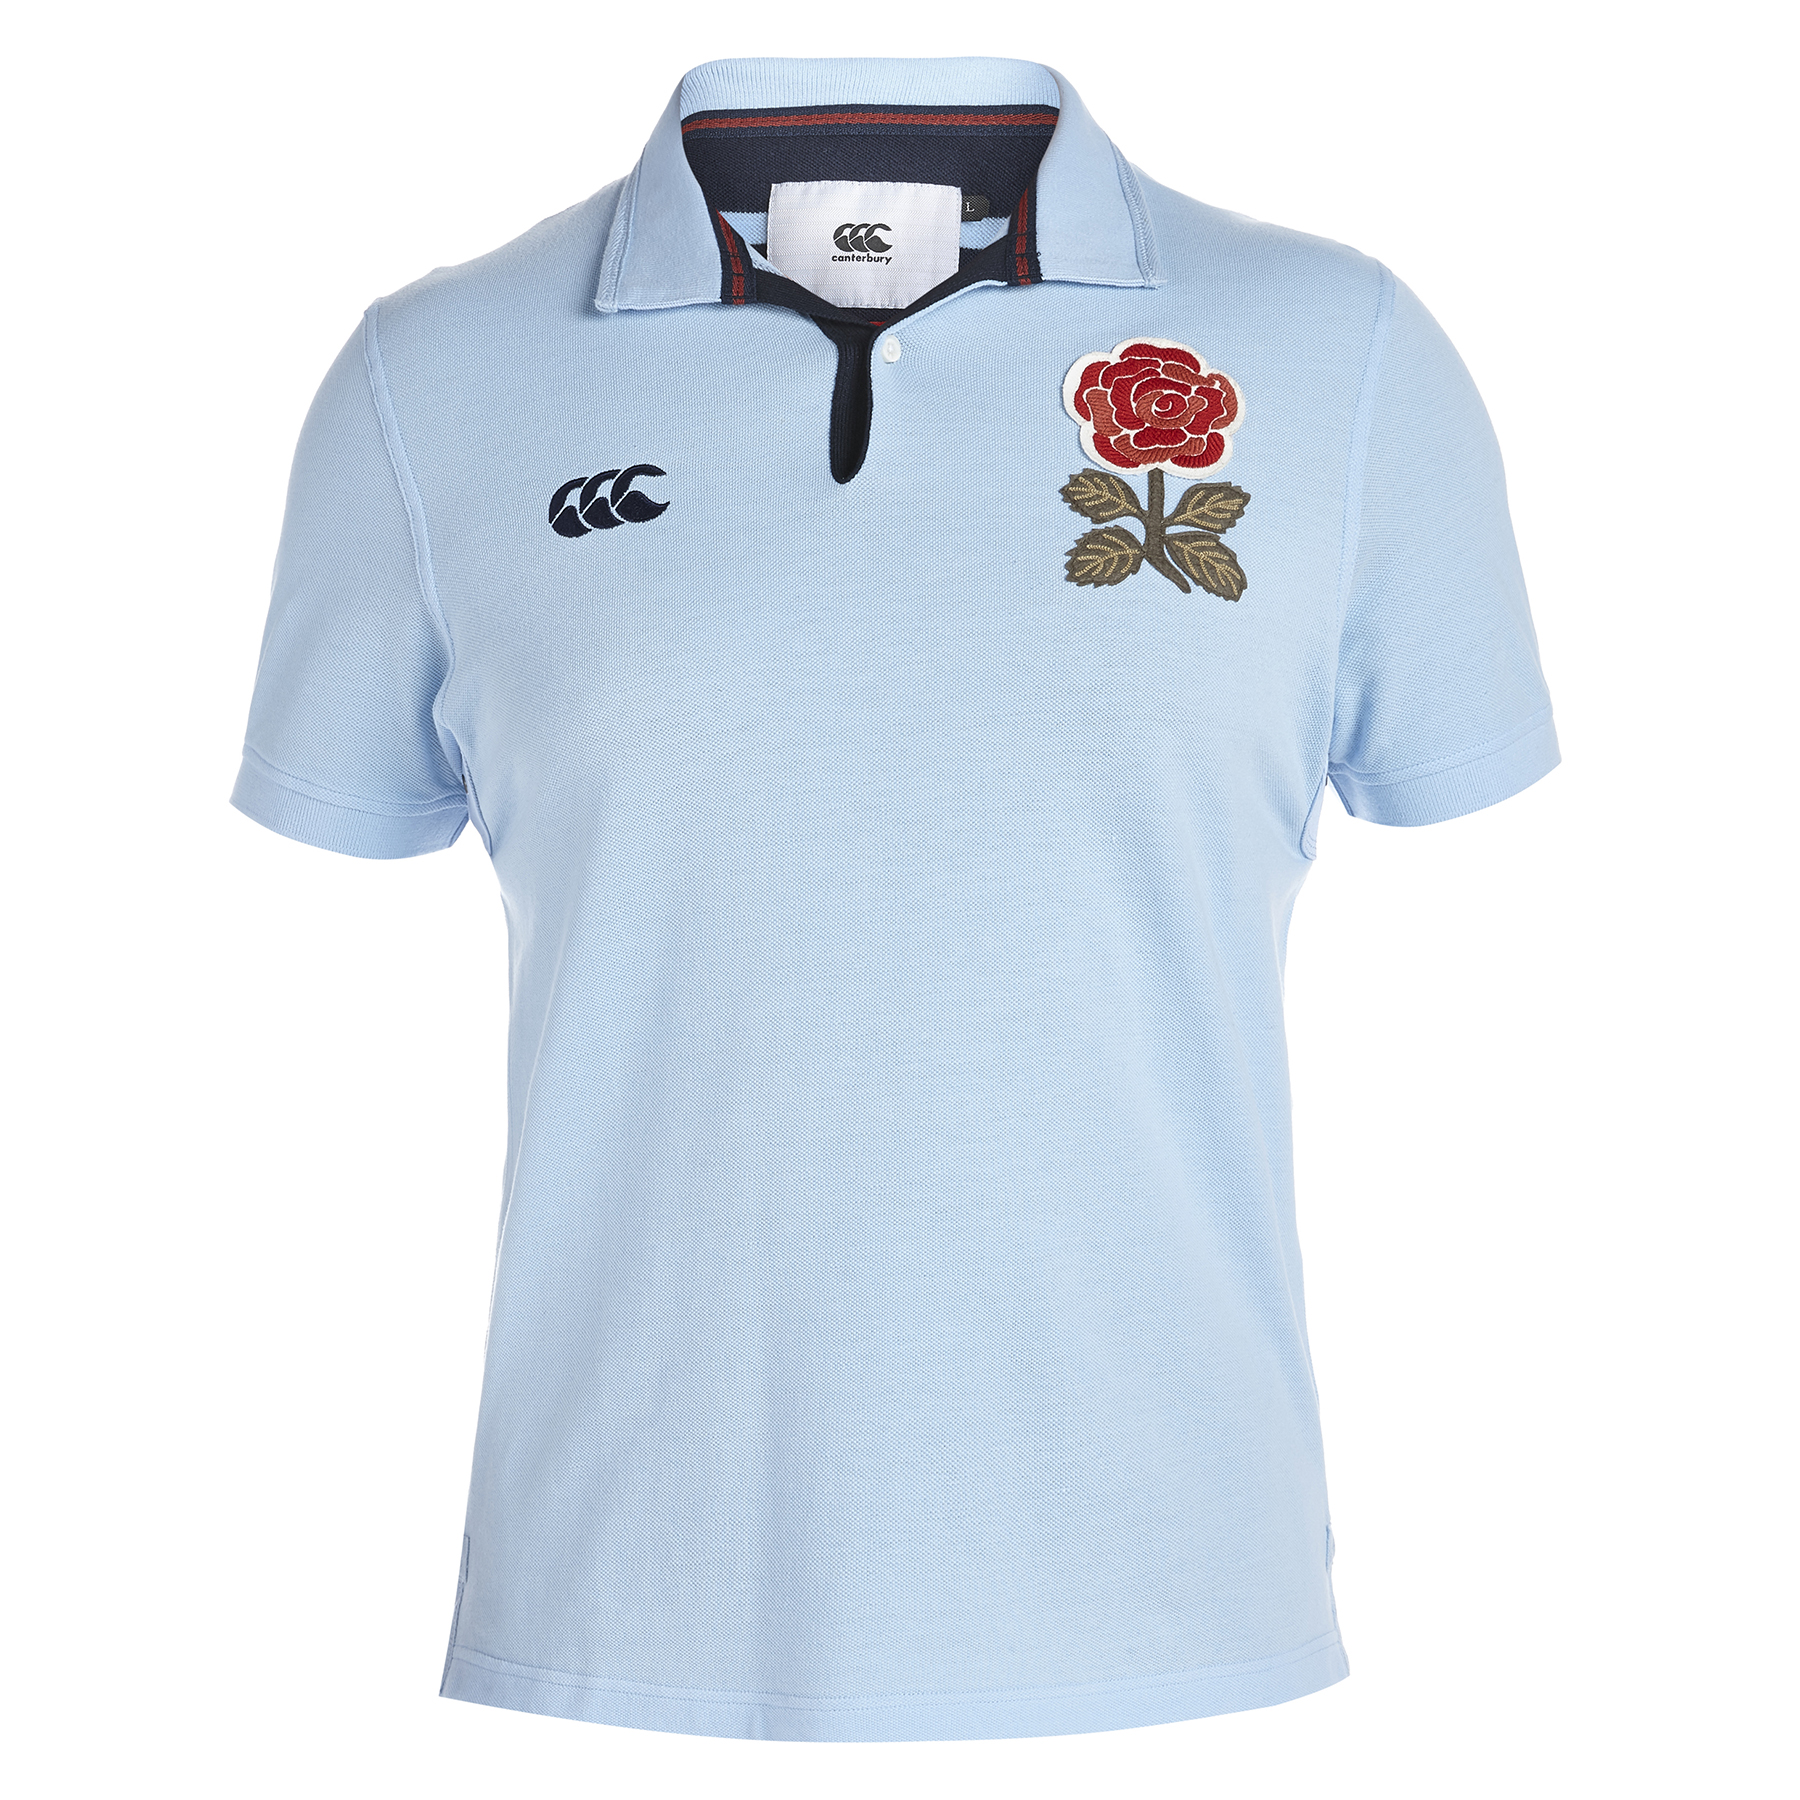 England Rugby 1871 Short Sleeve Loop Collar Pique Polo Sky Blue